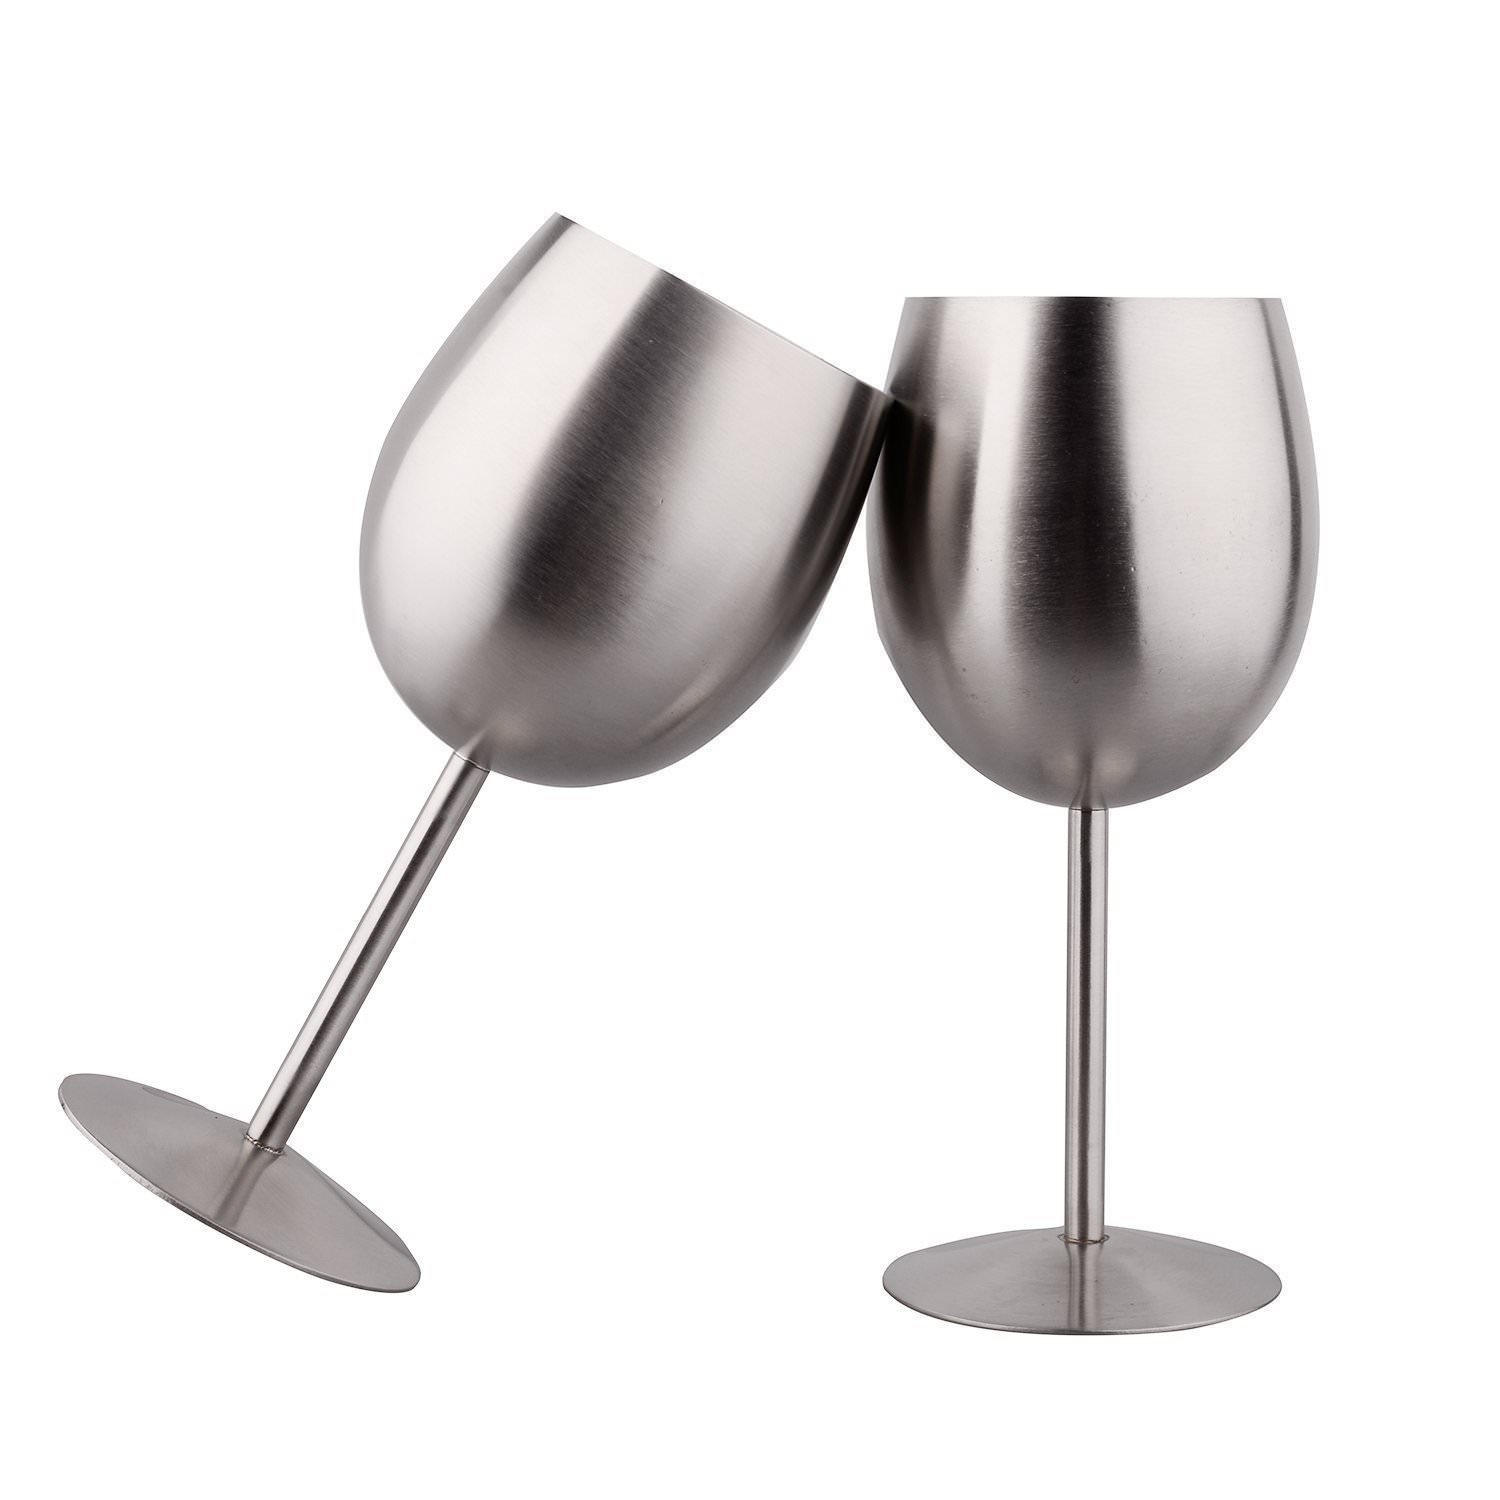 King International Stainless Steel Wine Glass Champagne Goblet Cup Drinking Mug SET OF 6 PIECES Elegant Wine Glasses Made of Dishwasher Safe Unbreakable BPA Free Shatterproof SS Great for Daily by King International (Image #5)